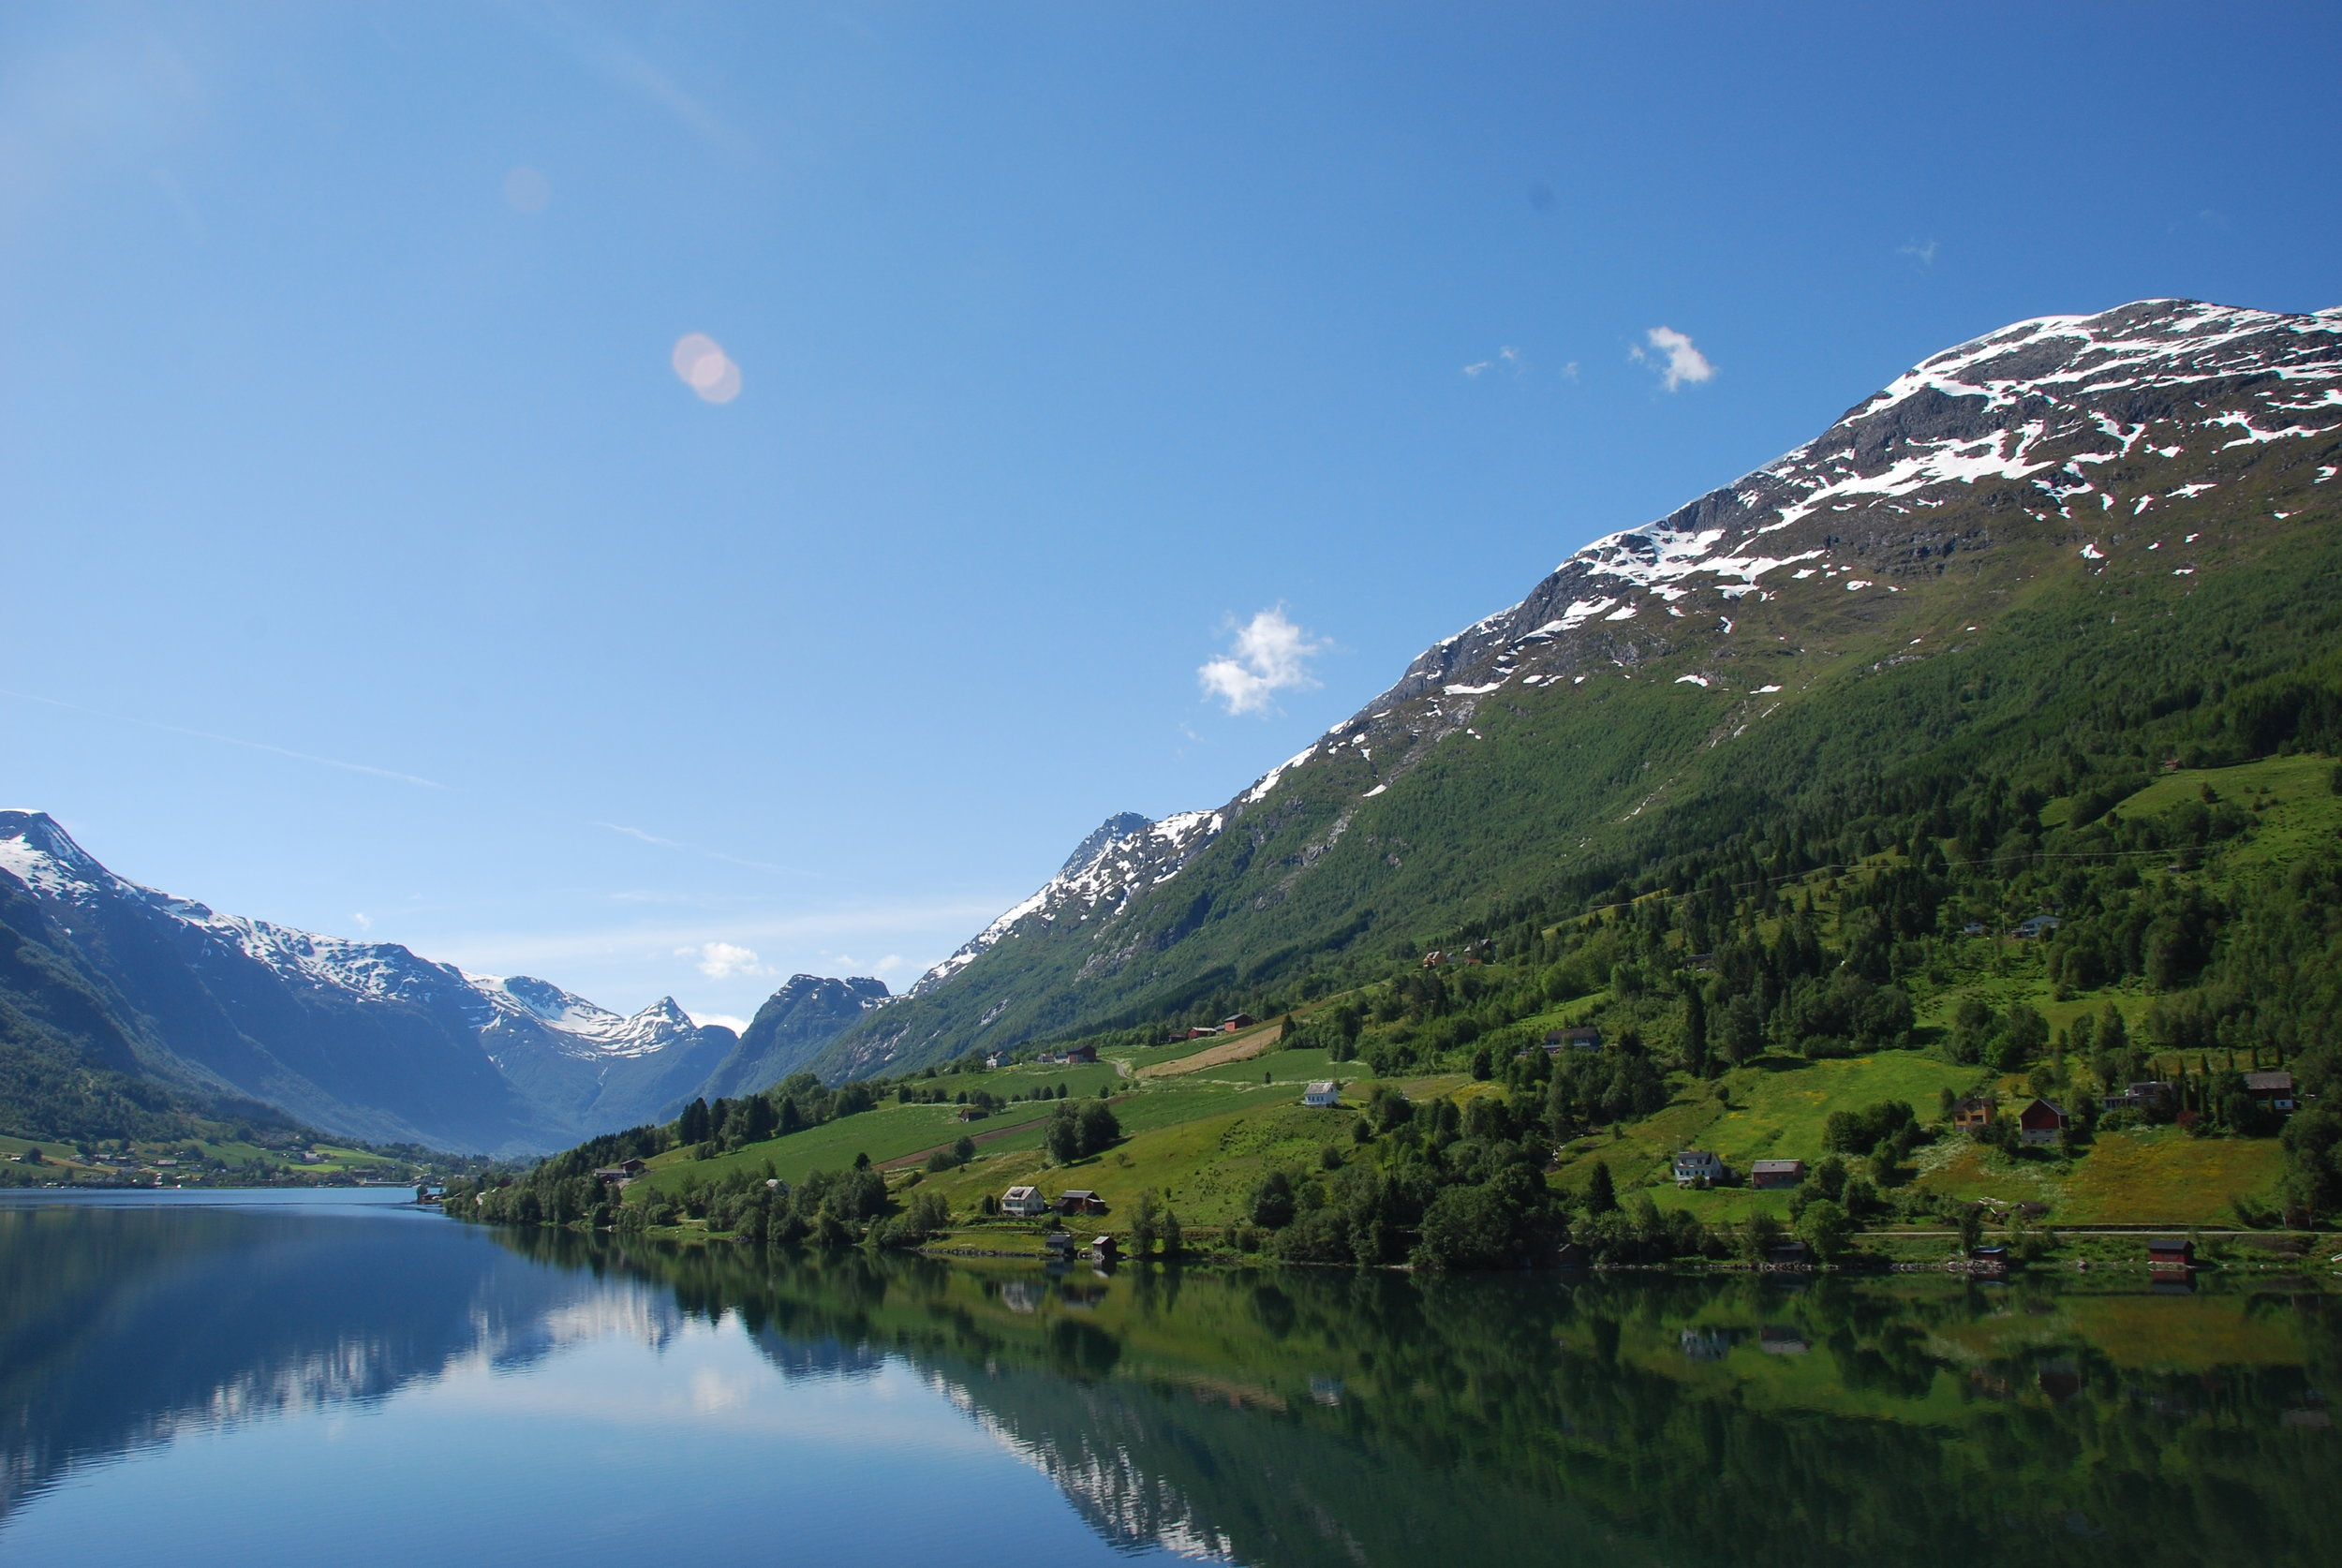 Fjords of Norway - Cruise & Walk Norway's coast and fjords and discover some of the most beautiful scenery on earth.